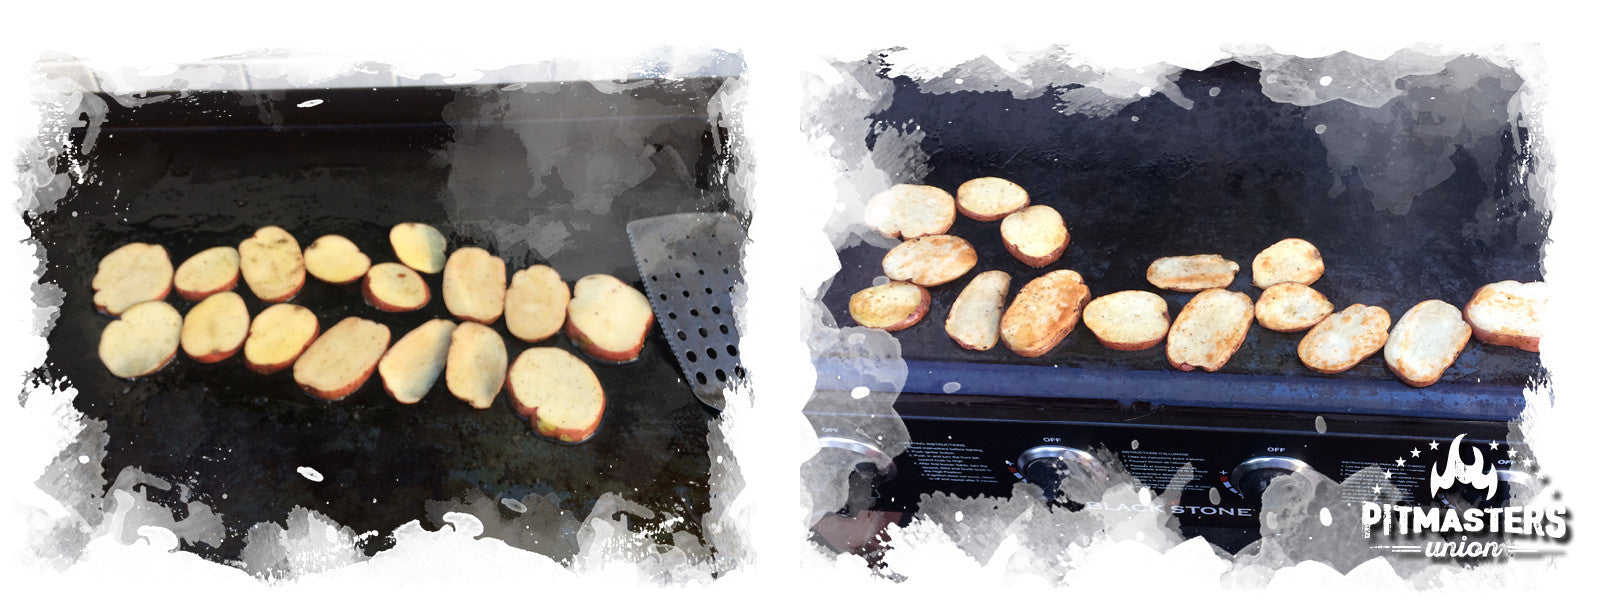 Grilling the potatoe wedges